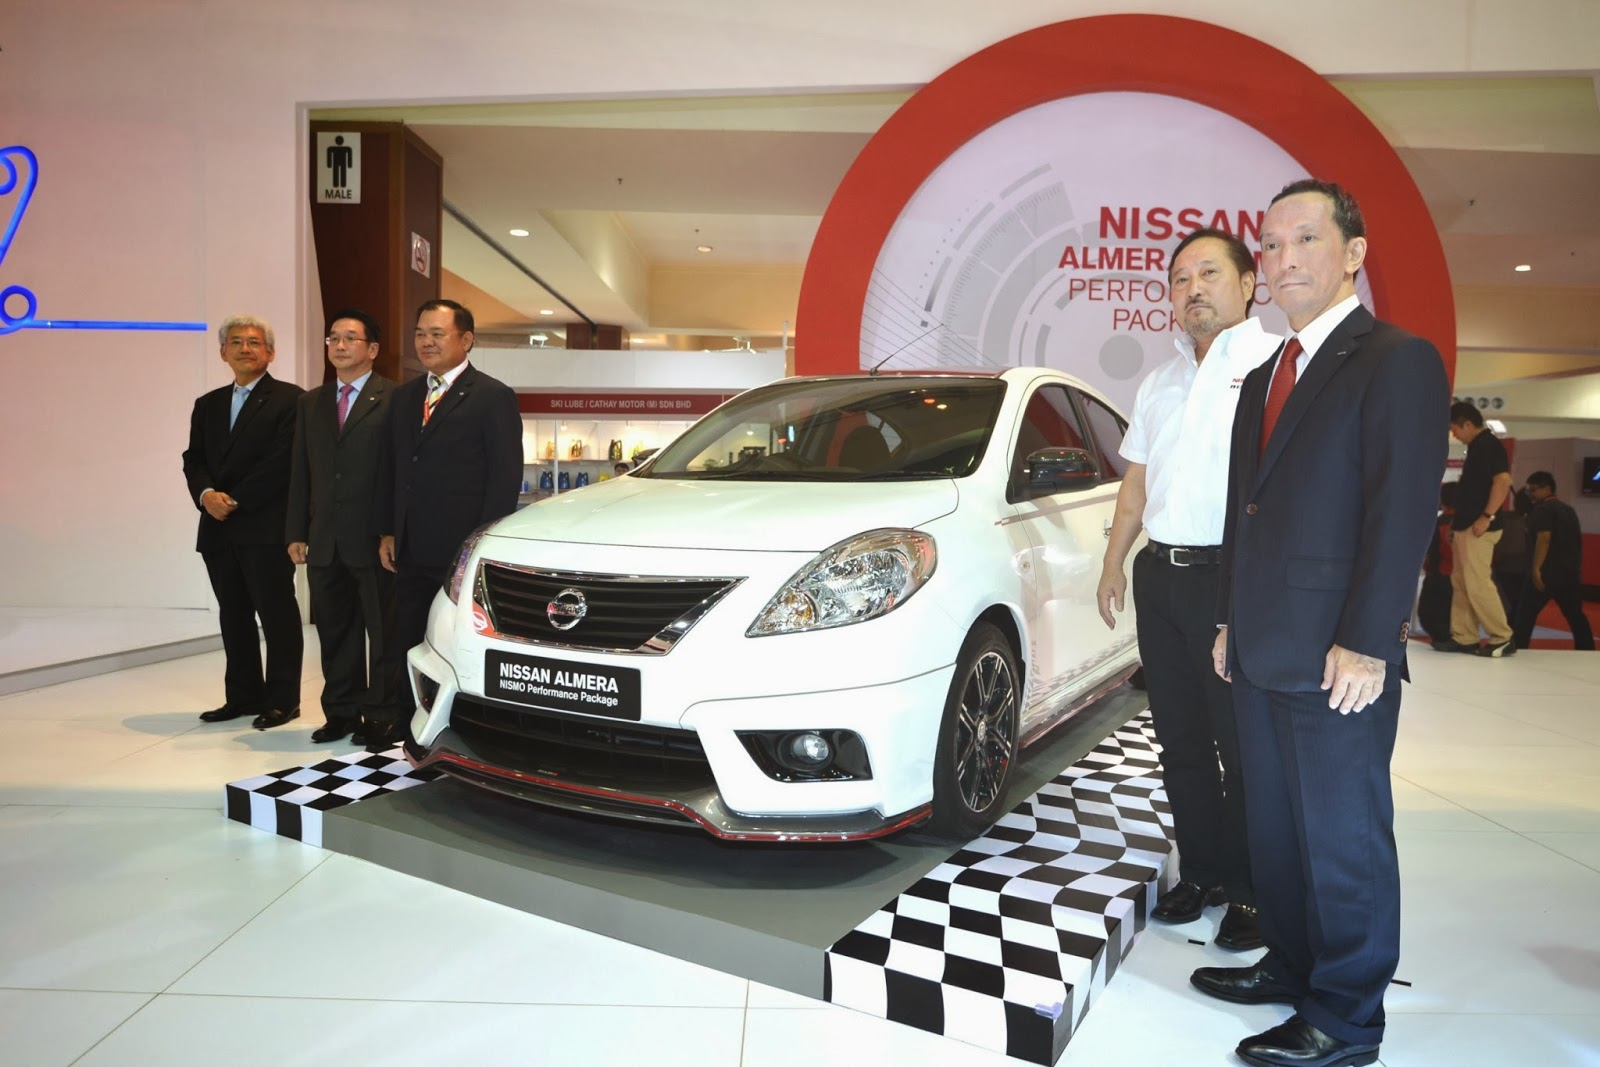 Motoring Malaysia Nissan Almera Nismo Package Why I Suggest You Black Should Save Your Money Instead